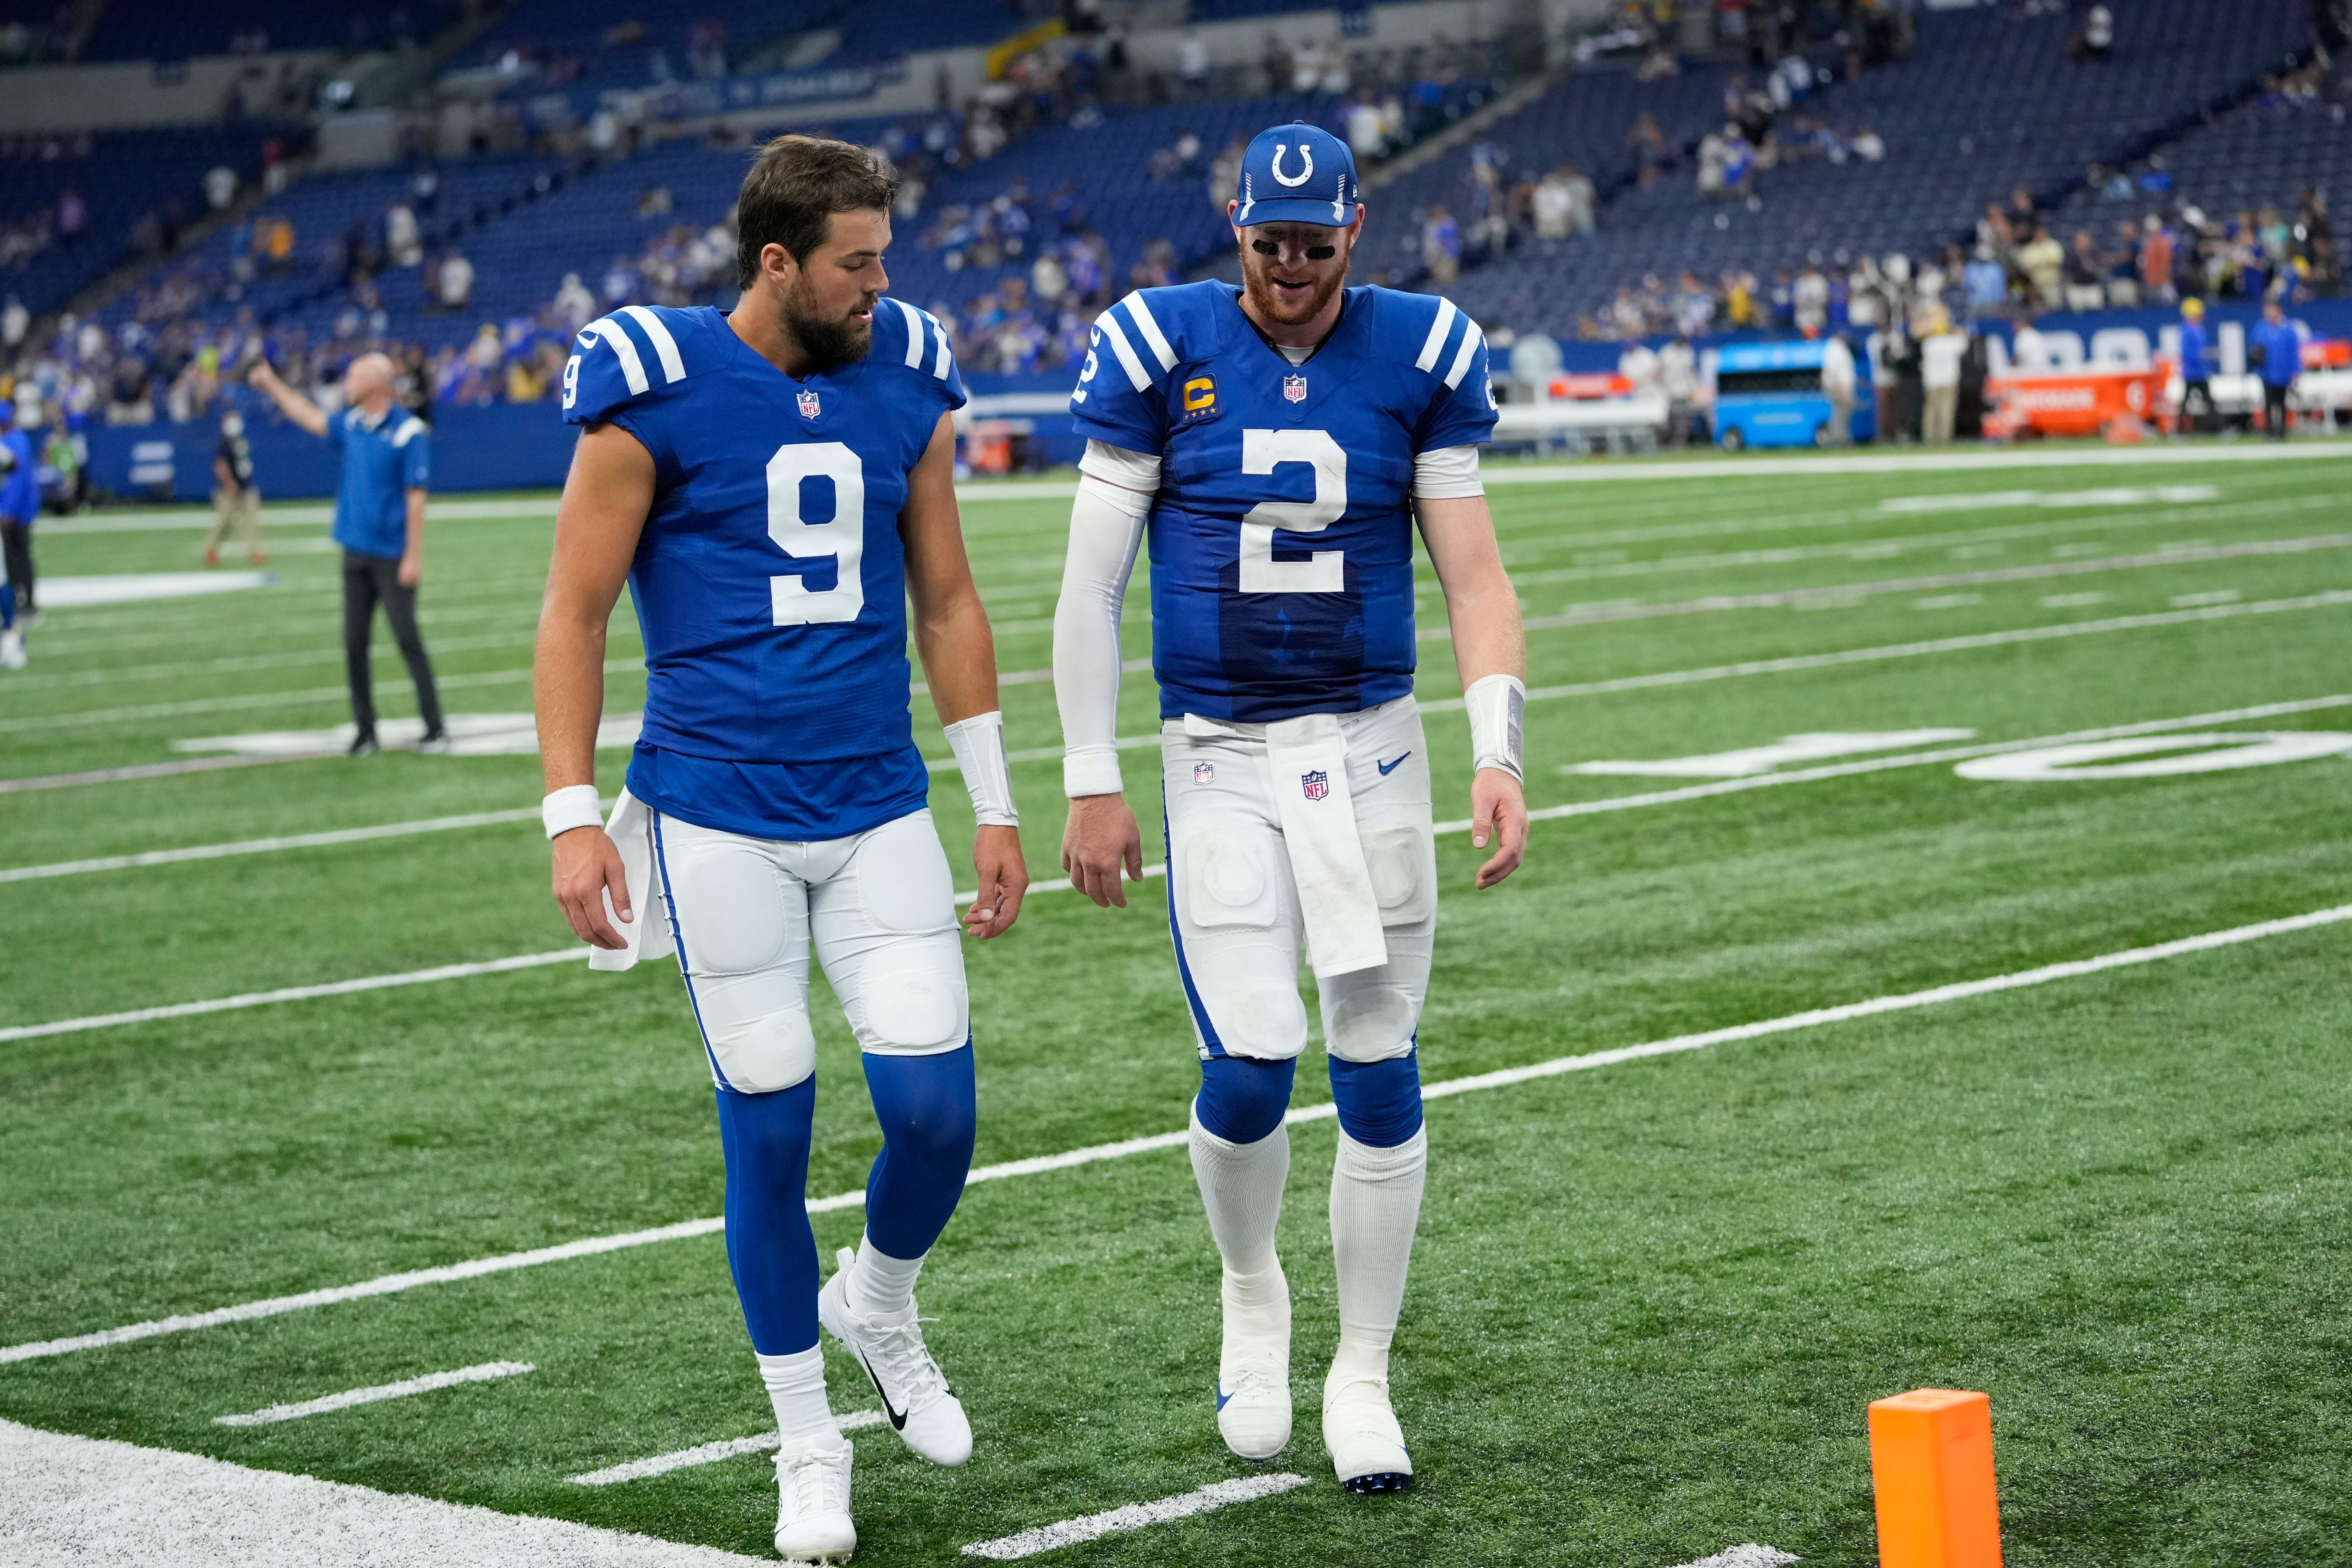 NFL Week 3: Does an injured Colts team have a chance against the Titans?